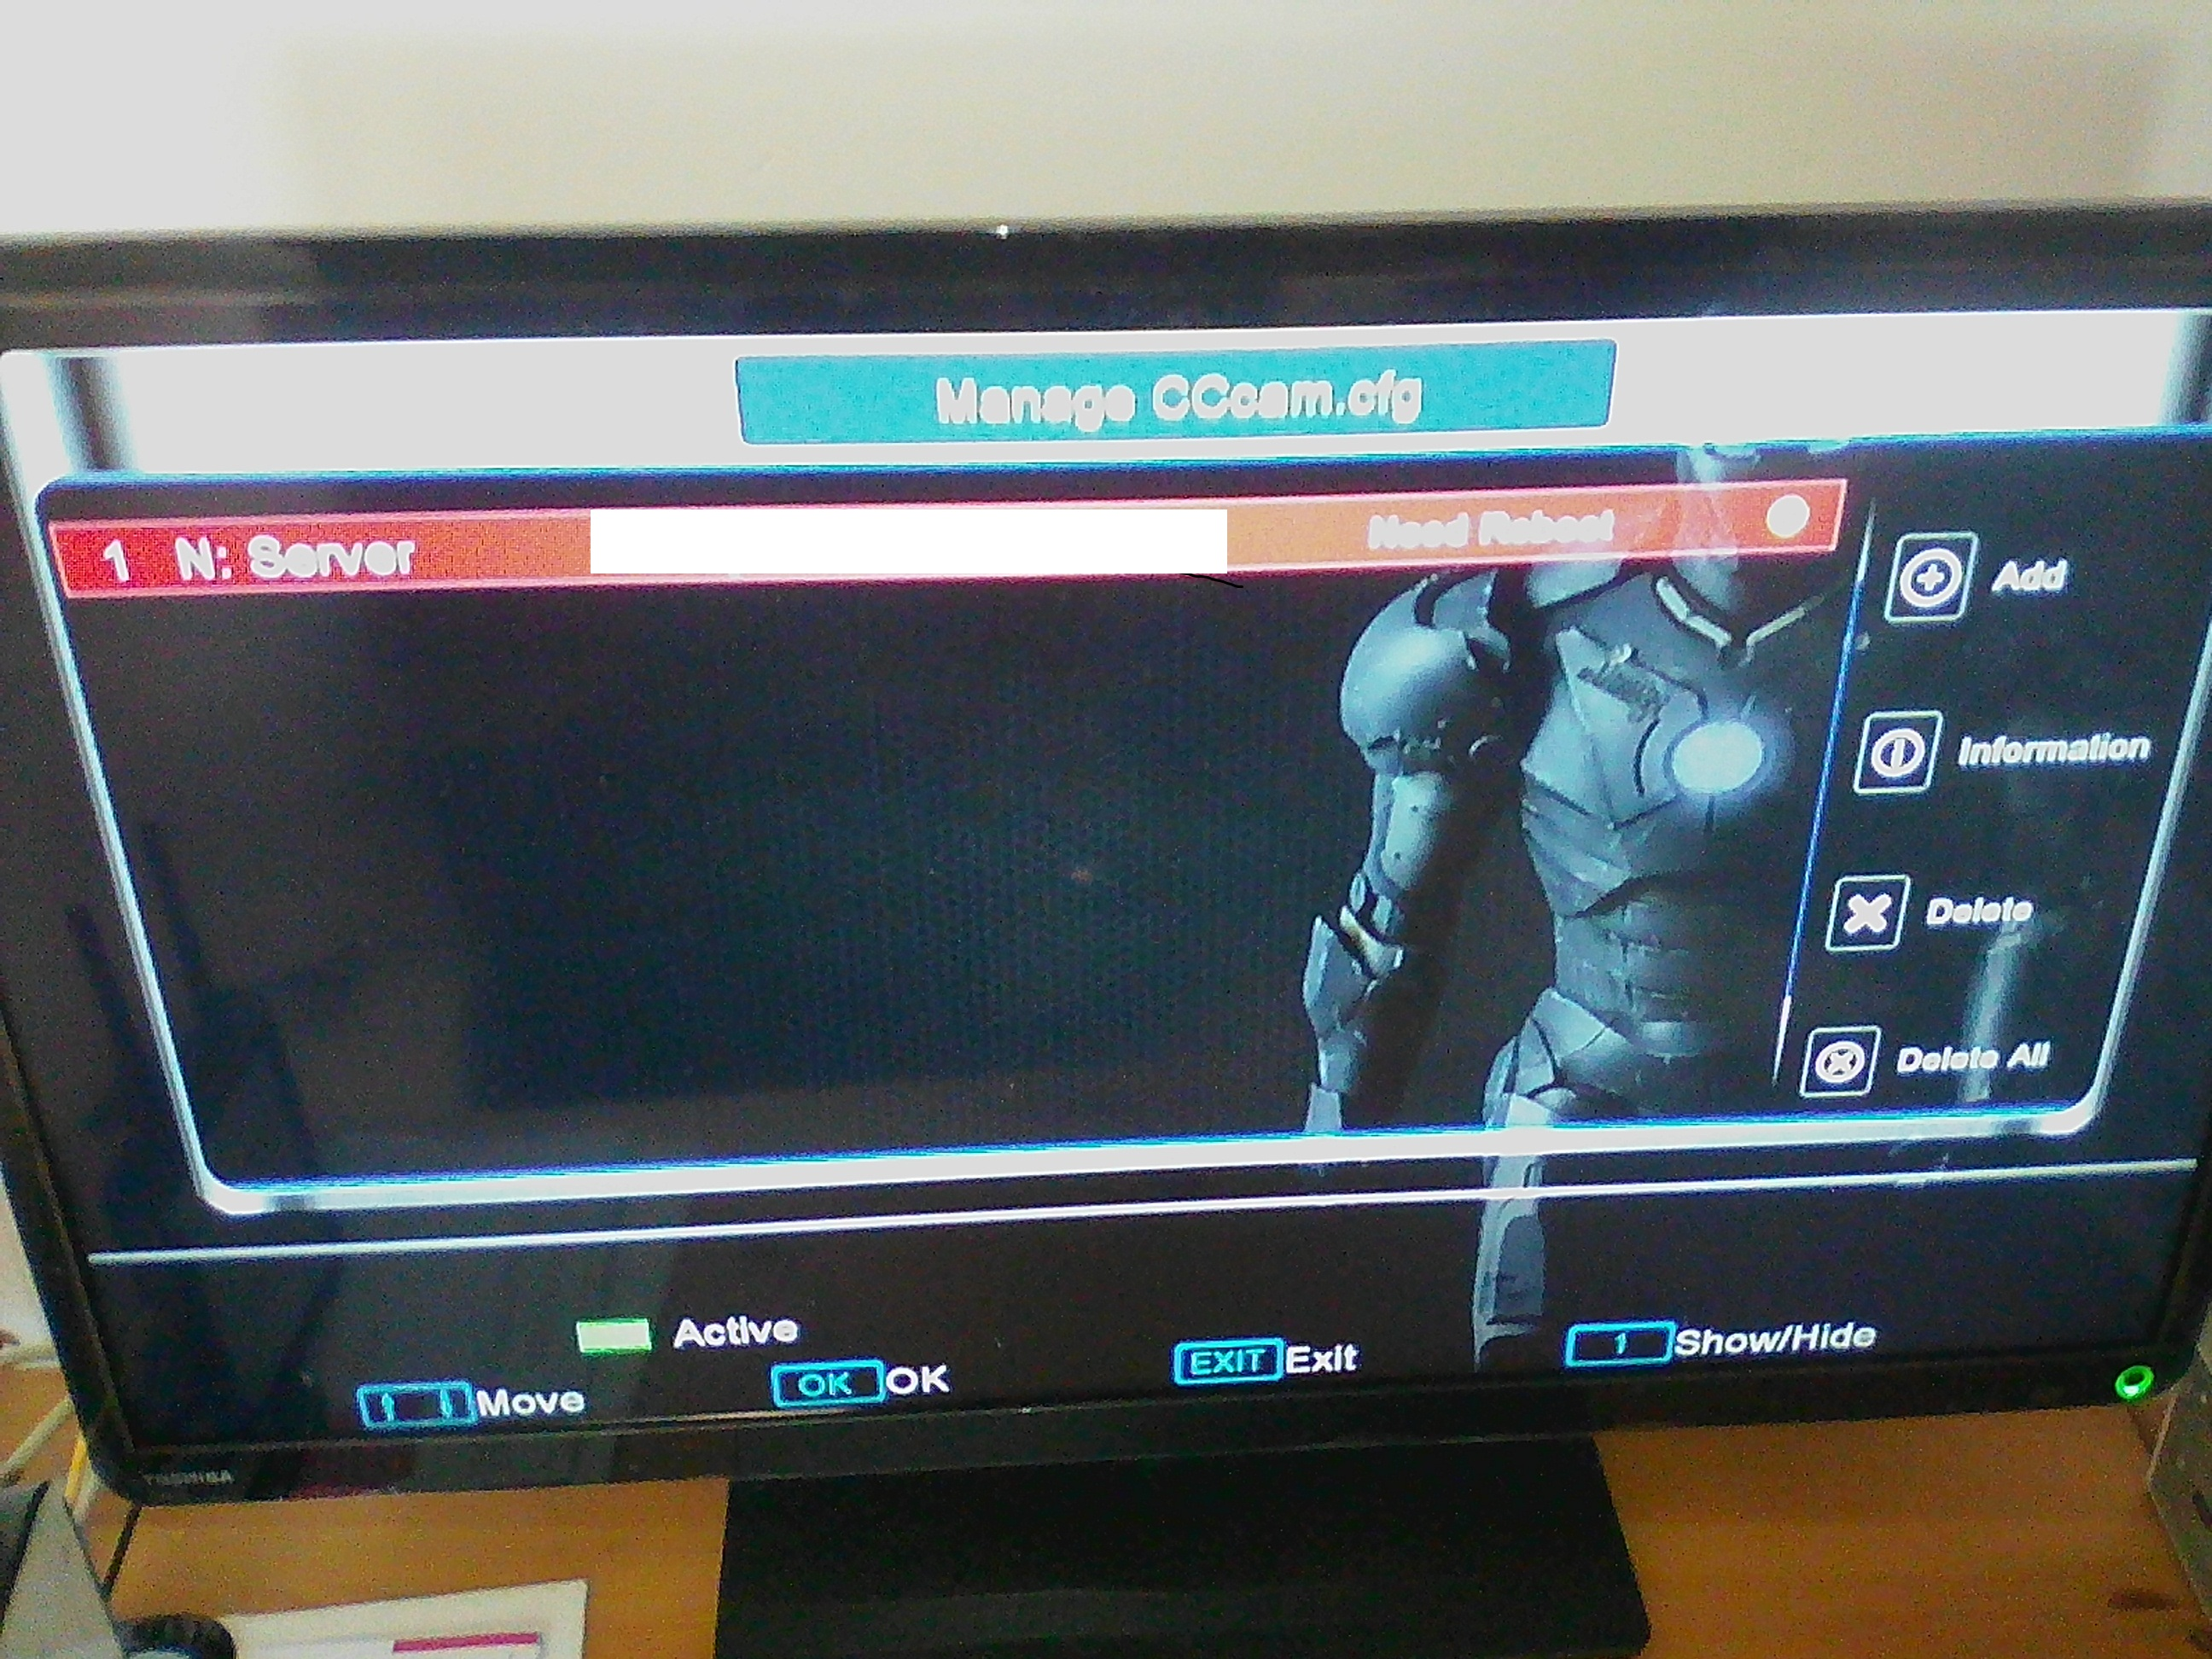 Openbox how to add server connection | My Free TV Box